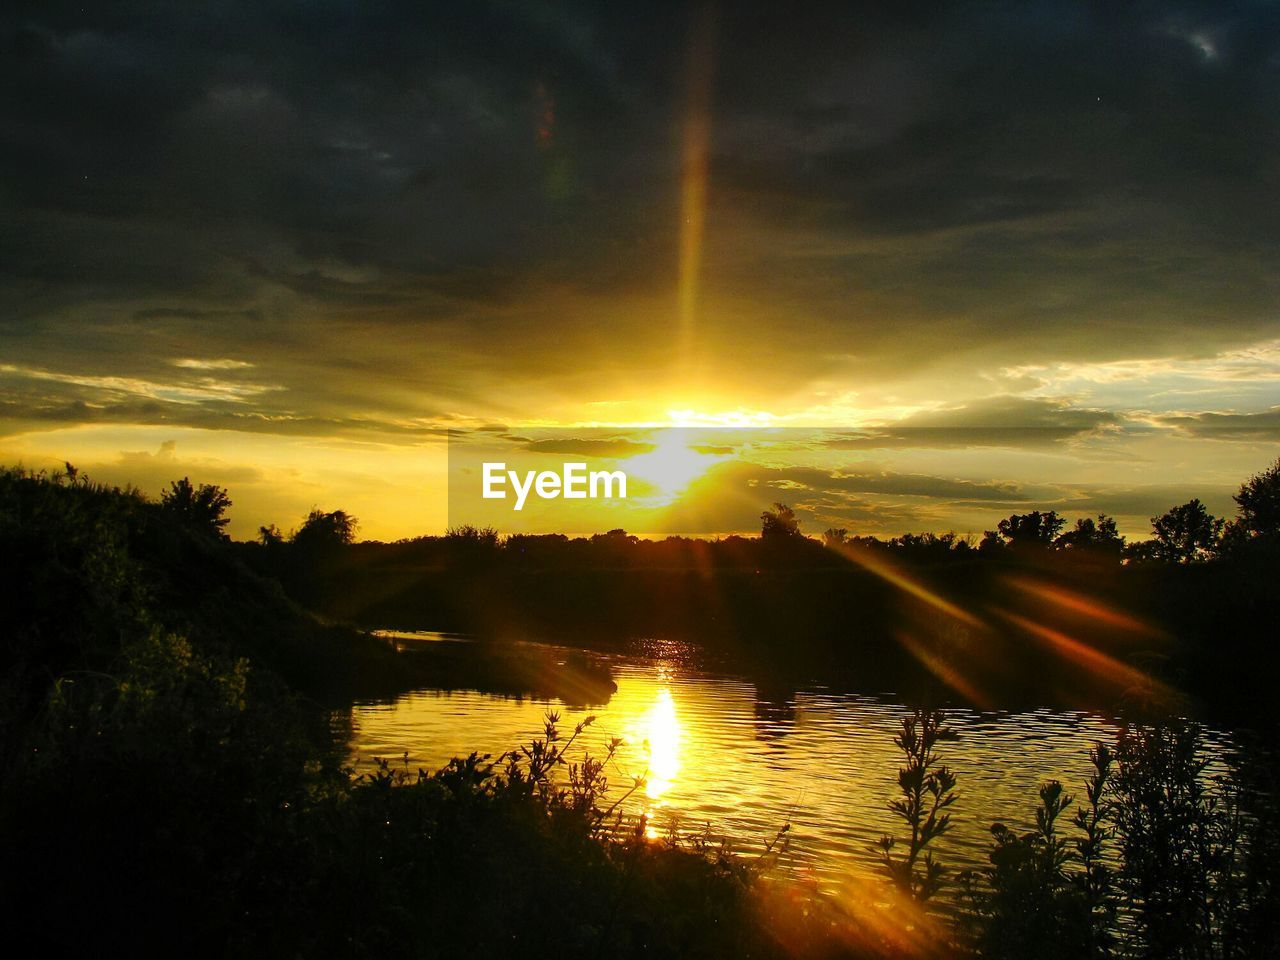 sunset, sky, cloud - sky, water, beauty in nature, scenics - nature, tranquil scene, tranquility, reflection, tree, sun, silhouette, sunlight, no people, lake, plant, nature, orange color, idyllic, lens flare, outdoors